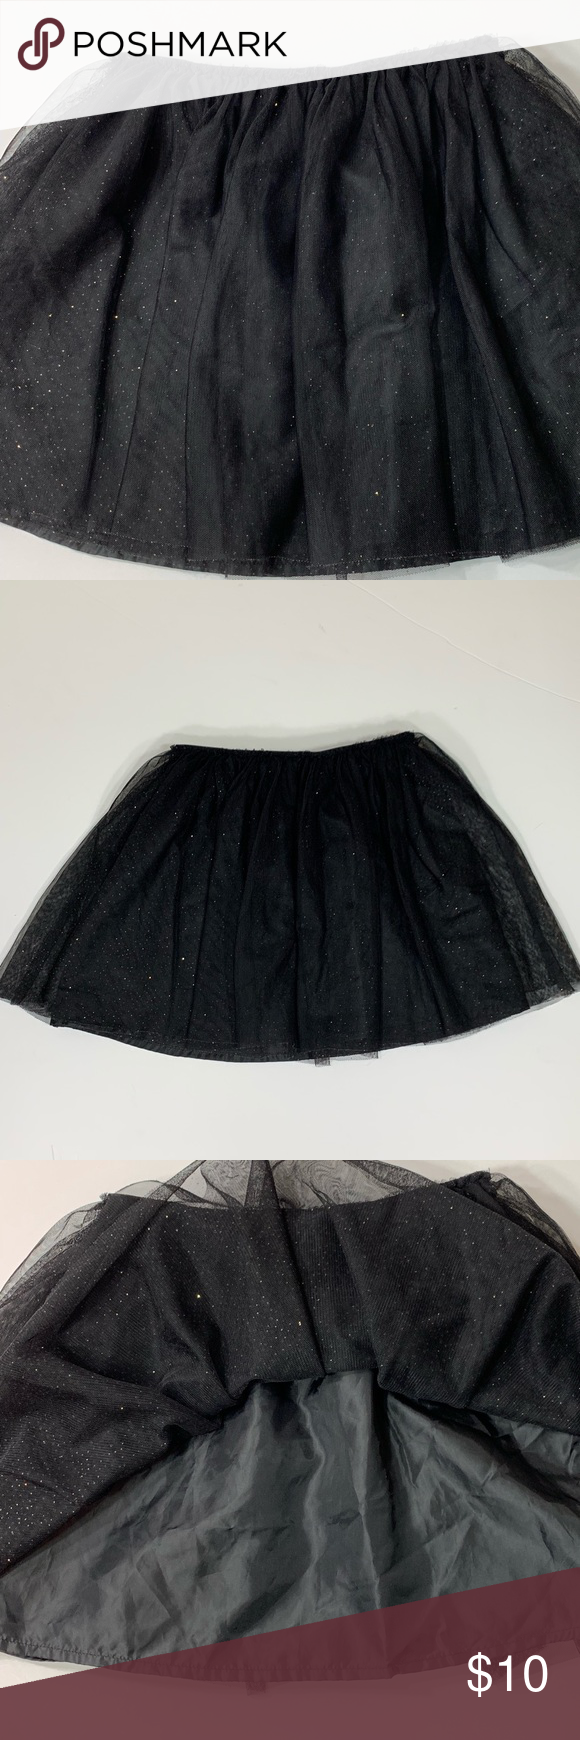 5796acca6d Cat & Jack tulle skirt Black tulle skirt with gold sparkles Elastic  waistband Size 7/8 Cat & Jack Bottoms Skirts